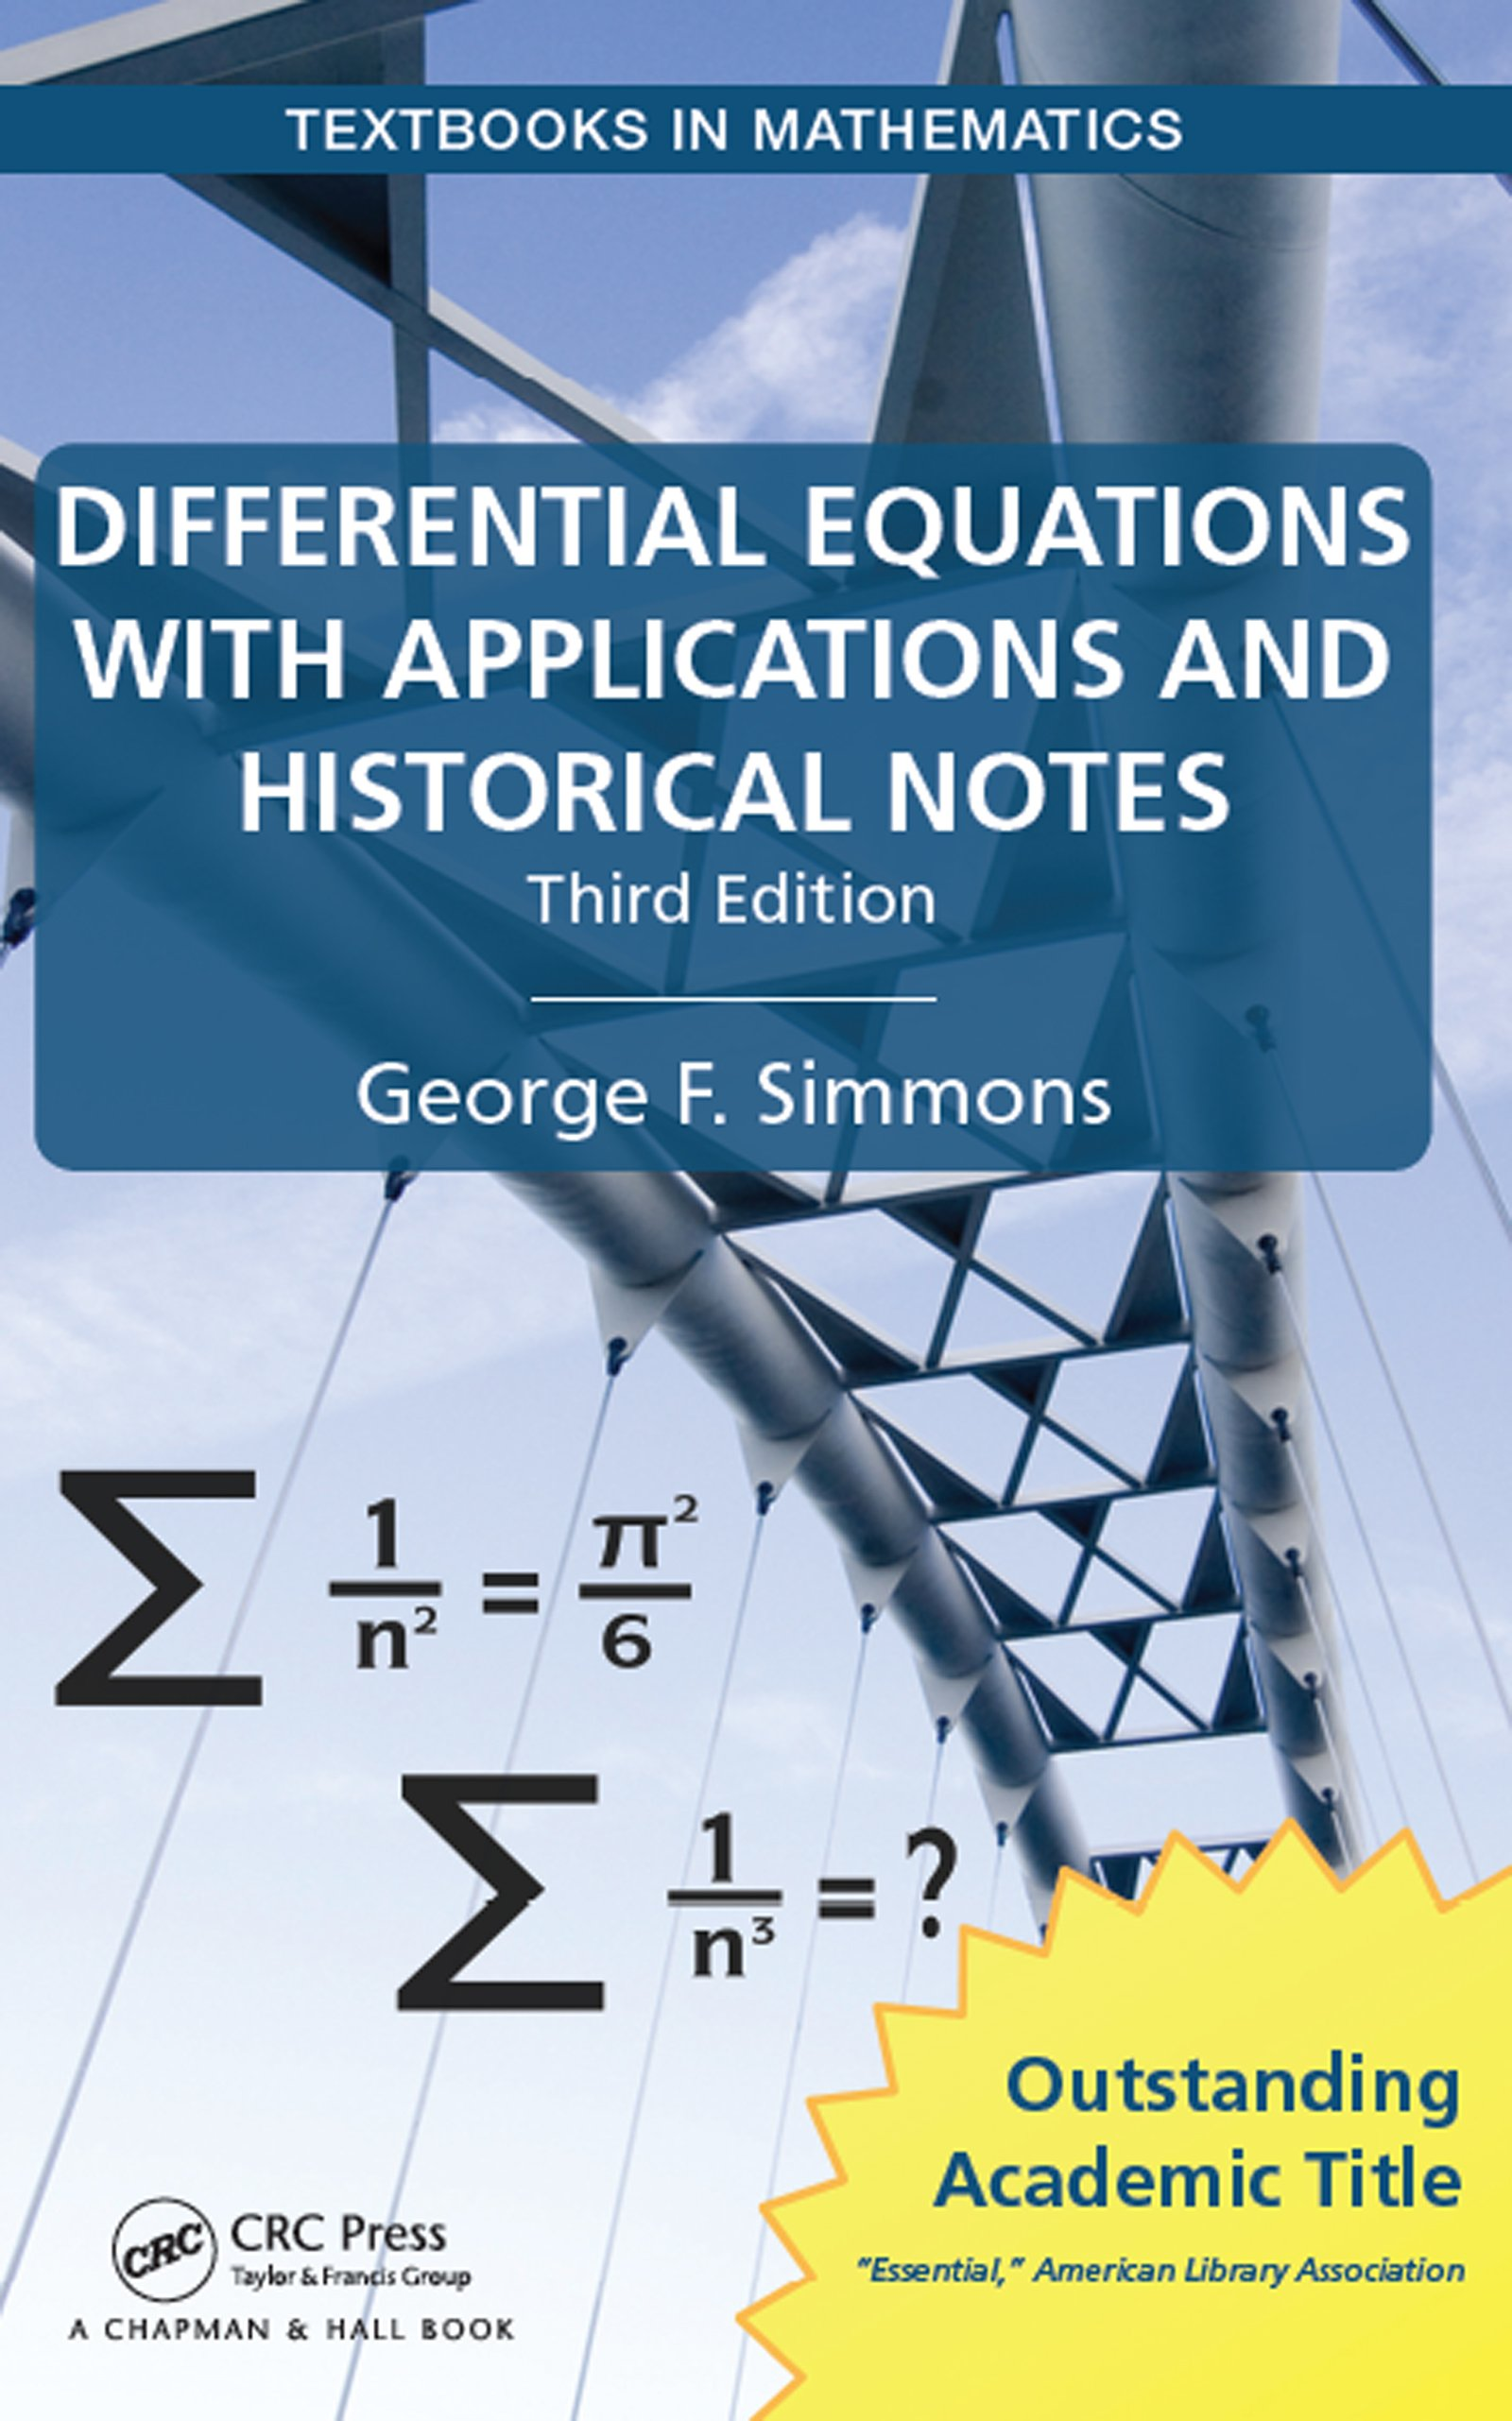 Differential Equations with Applications and Historical Notes, Third Edition book cover